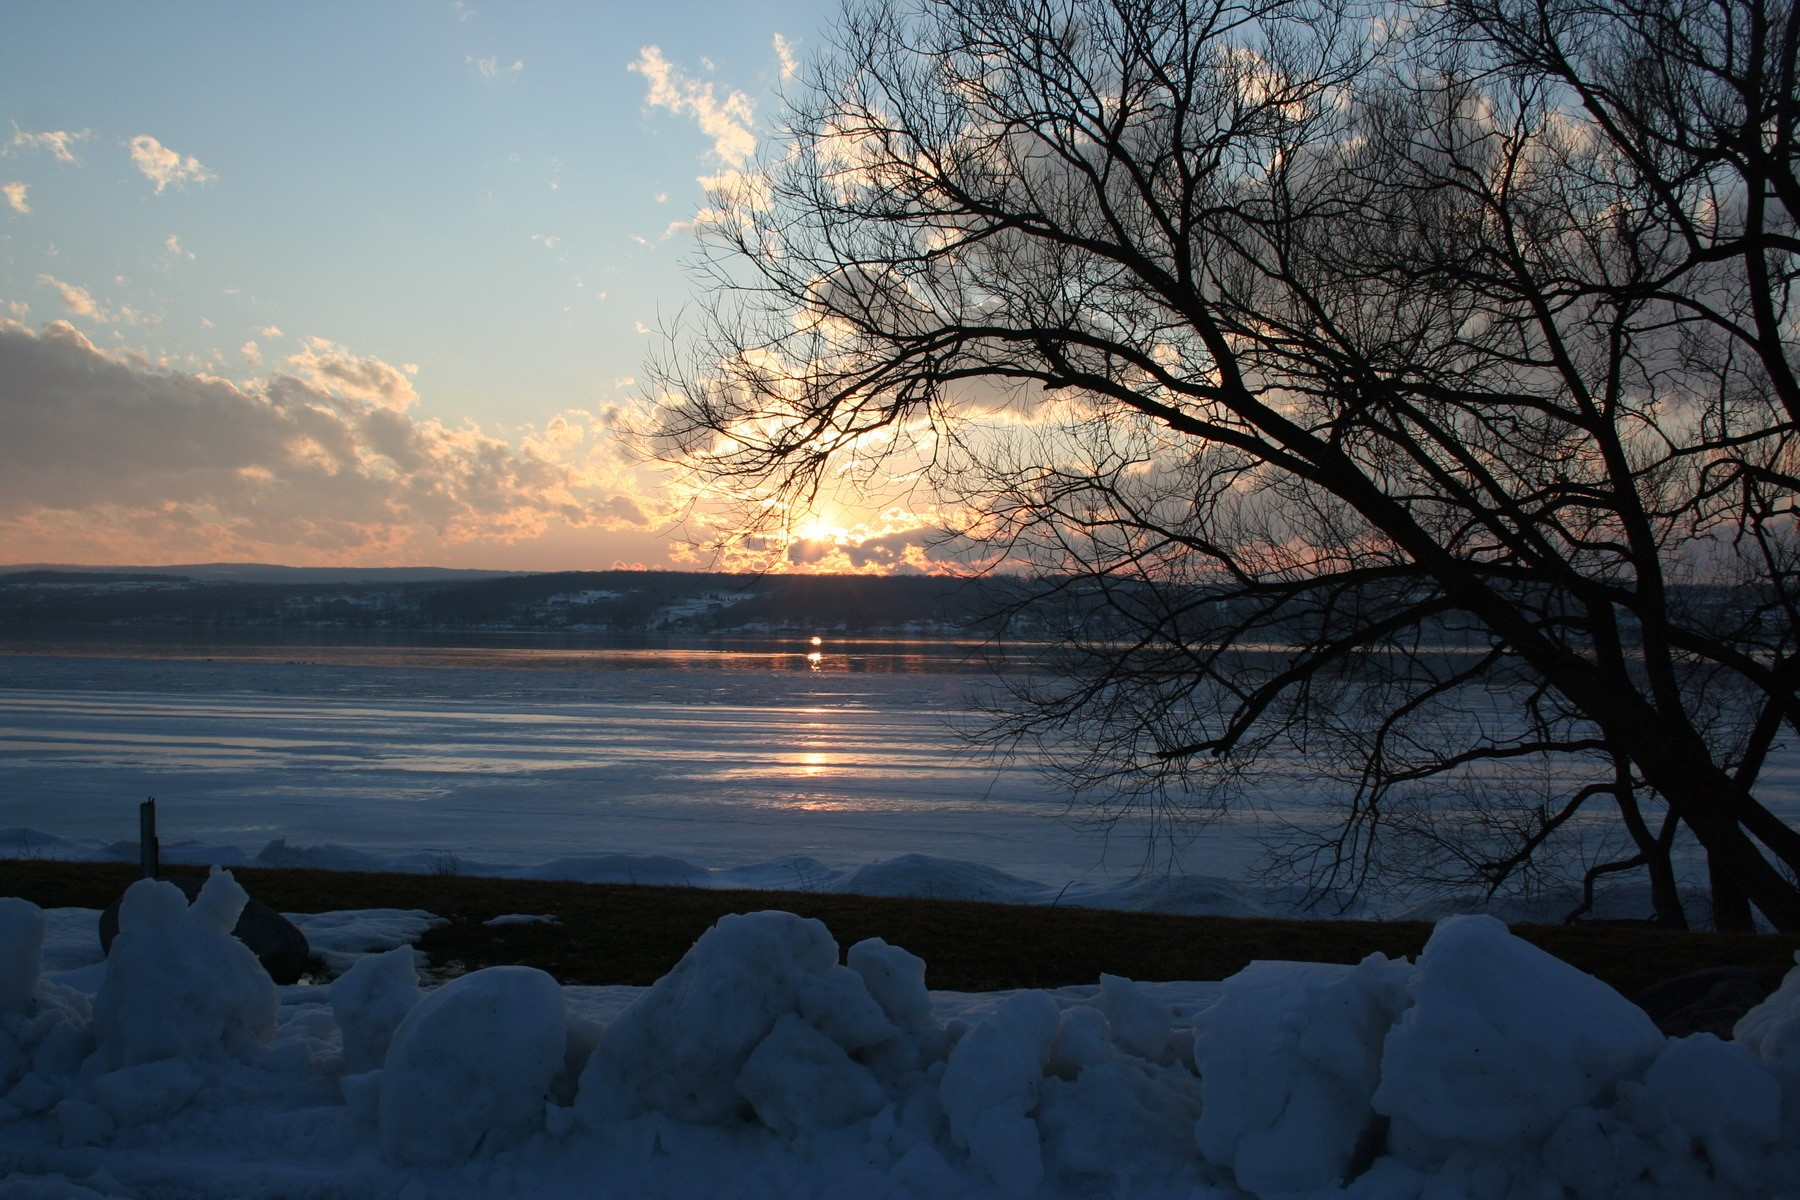 Winter Sunset on Canandaigua Lake